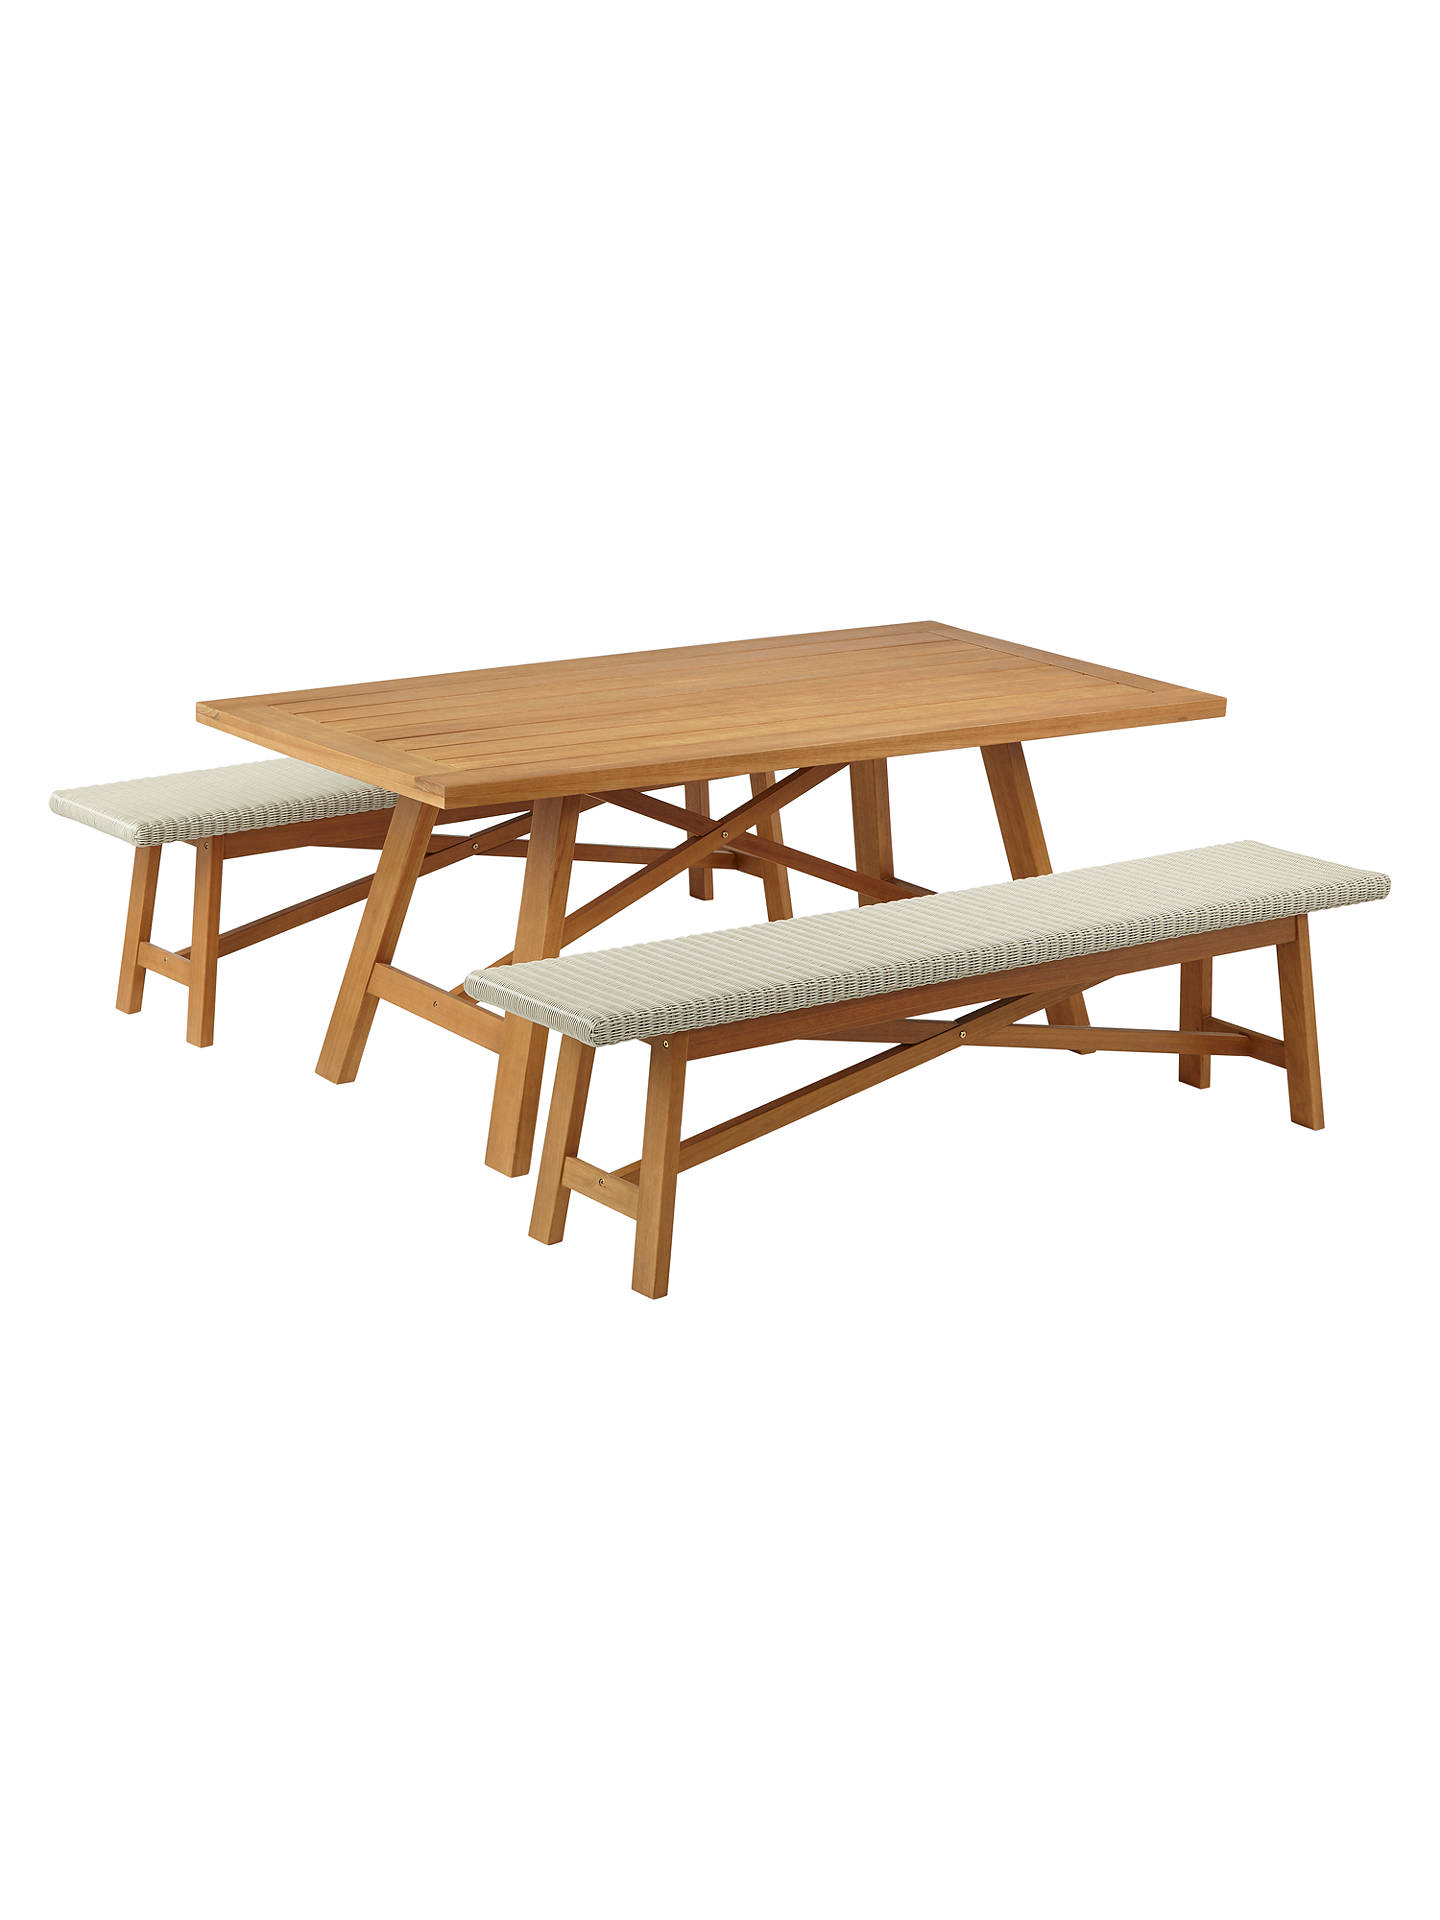 Fabulous John Lewis Partners Stockholm 6 Seater Garden Dining Table Bench Set Fsc Certified Eucalyptus Natural Gmtry Best Dining Table And Chair Ideas Images Gmtryco